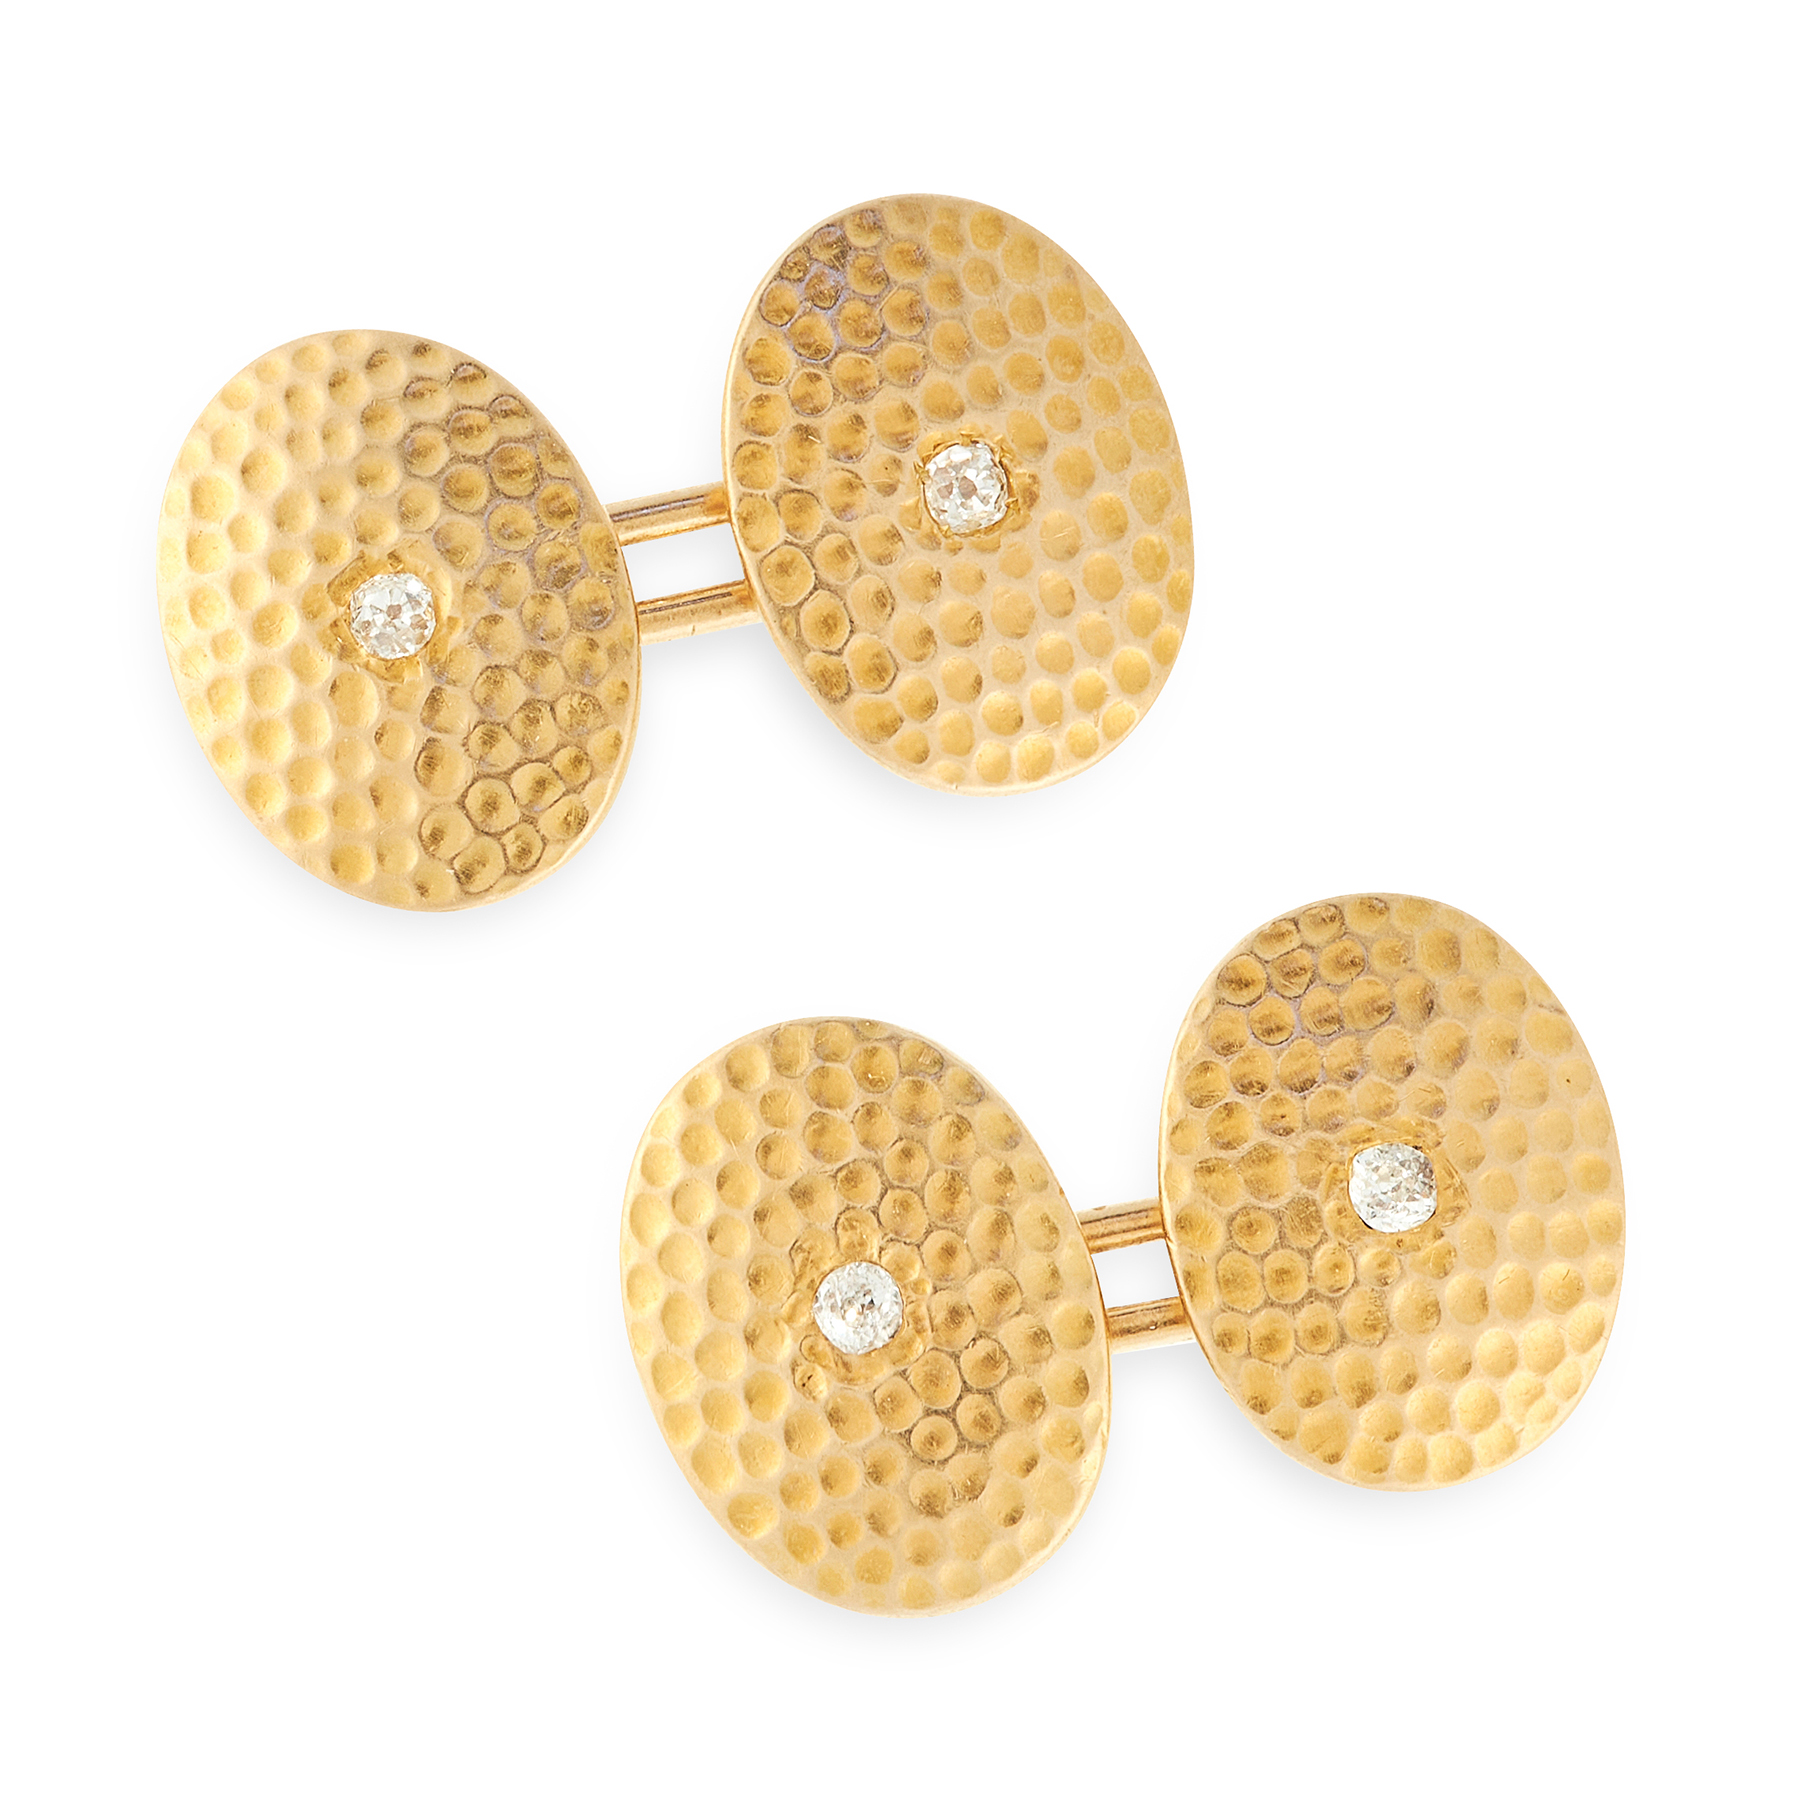 A PAIR OF DIAMOND CUFFLINKS, EARLY 20TH CENTURY in 18ct yellow gold, each formed of two oval faces